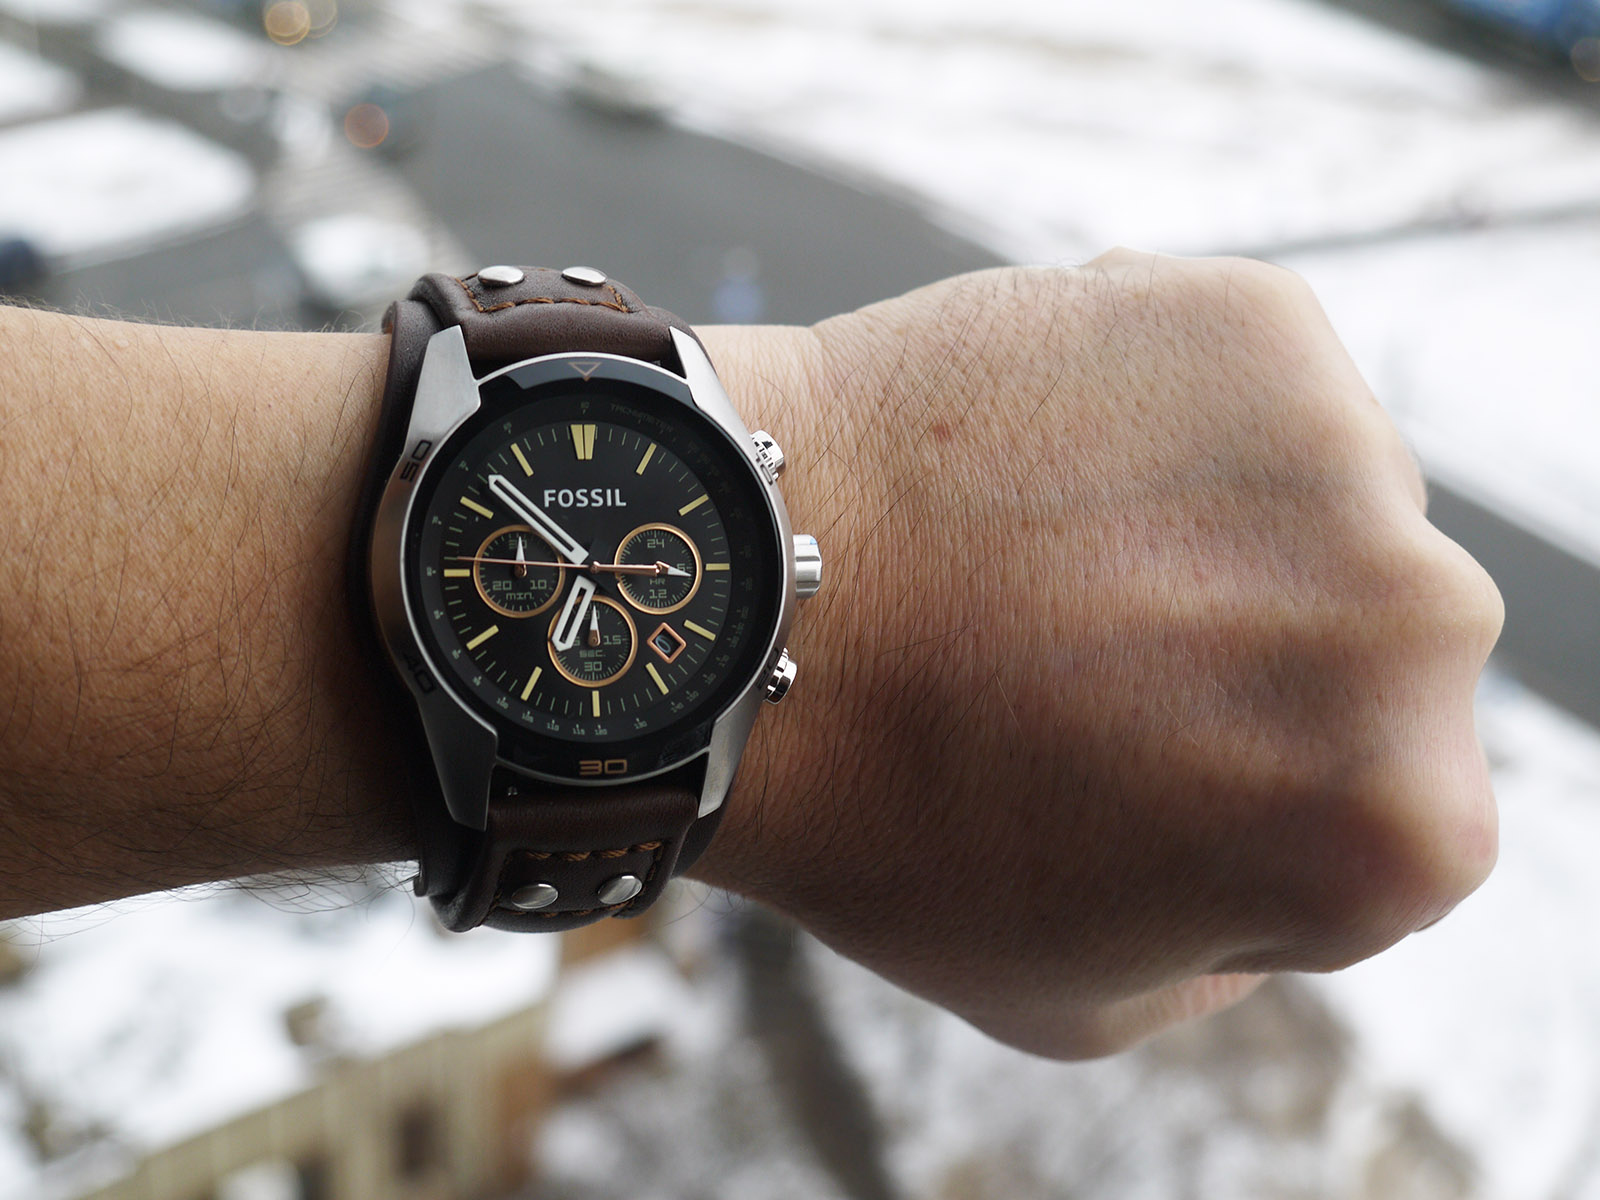 Coachman Chronograph Brown Leather Itravelpages Jam Tangan Fossil Original Watch Ch2891